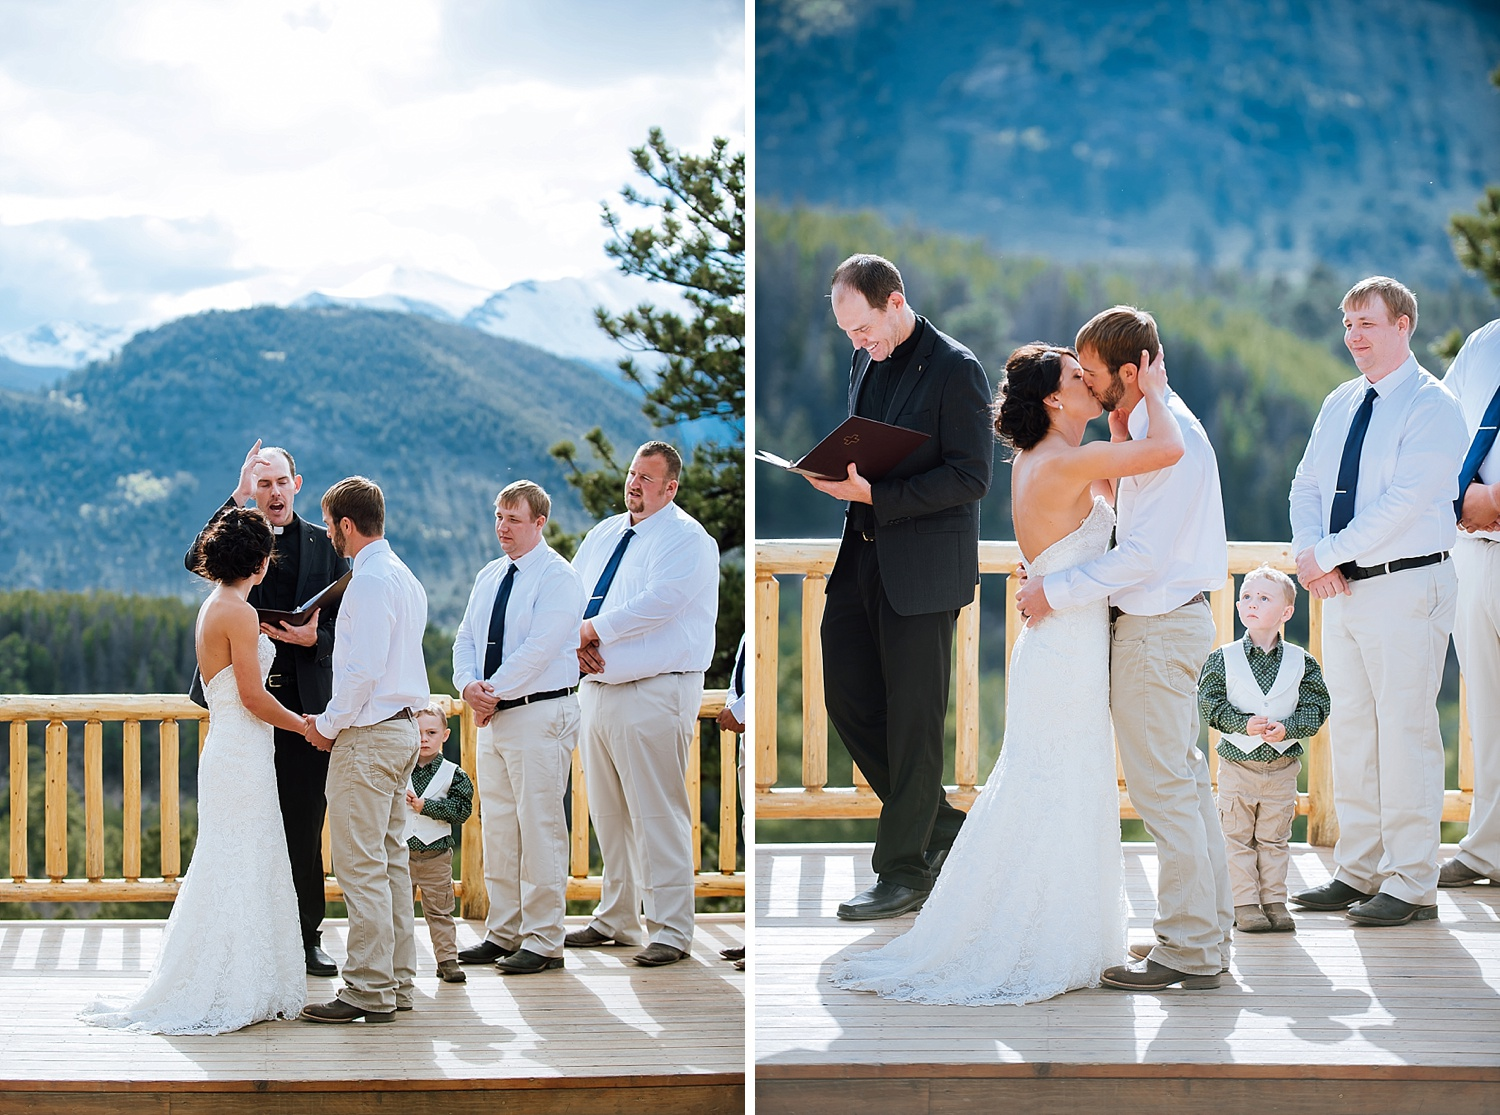 This first kiss is so beautiful especially with those mountains in the background! Estes Park is a beautiful wedding location. Photo by Maddie Mae Photography